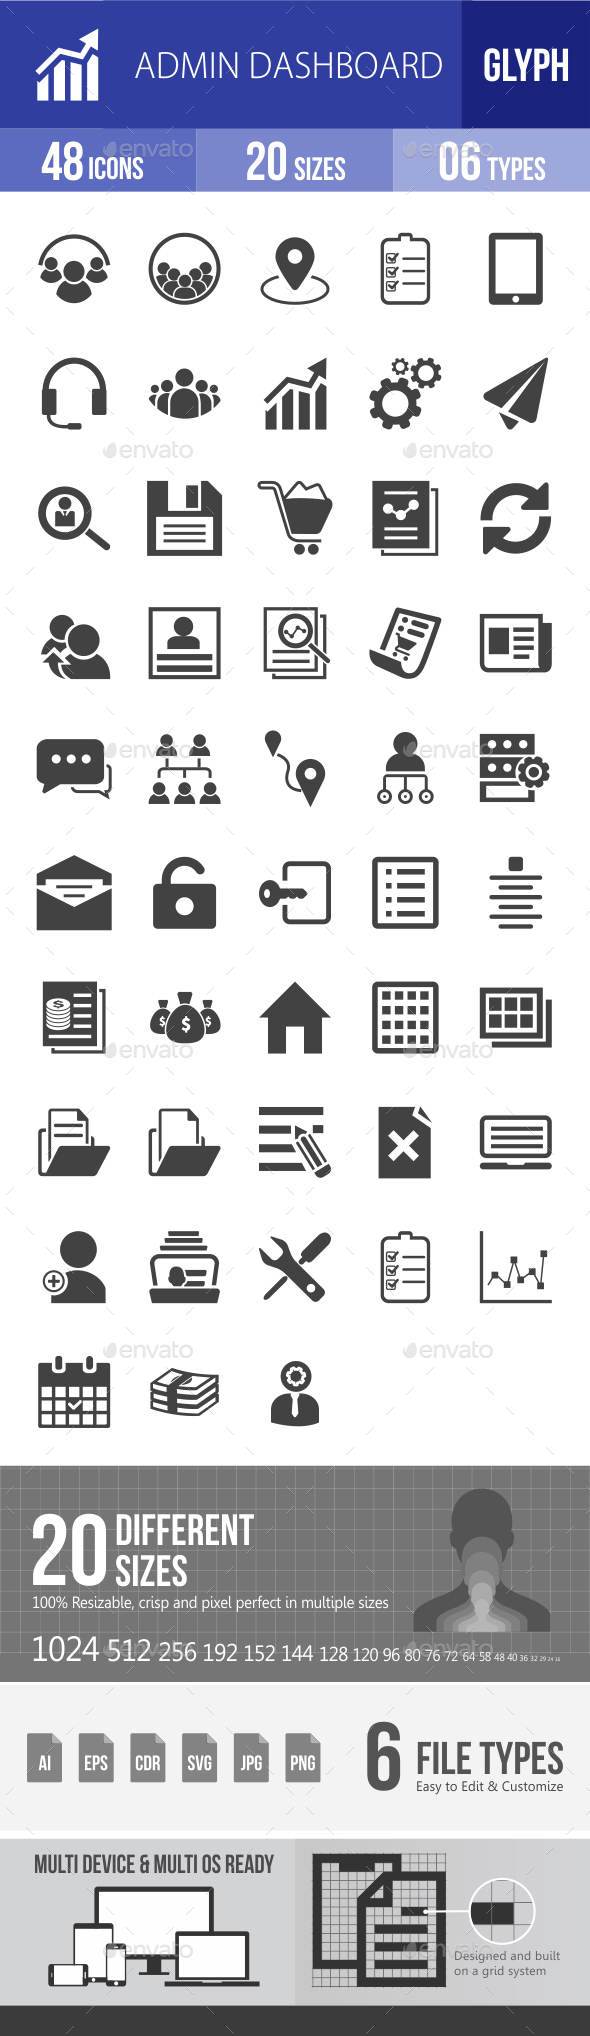 Admin Dashboard Glyph Icons - Icons